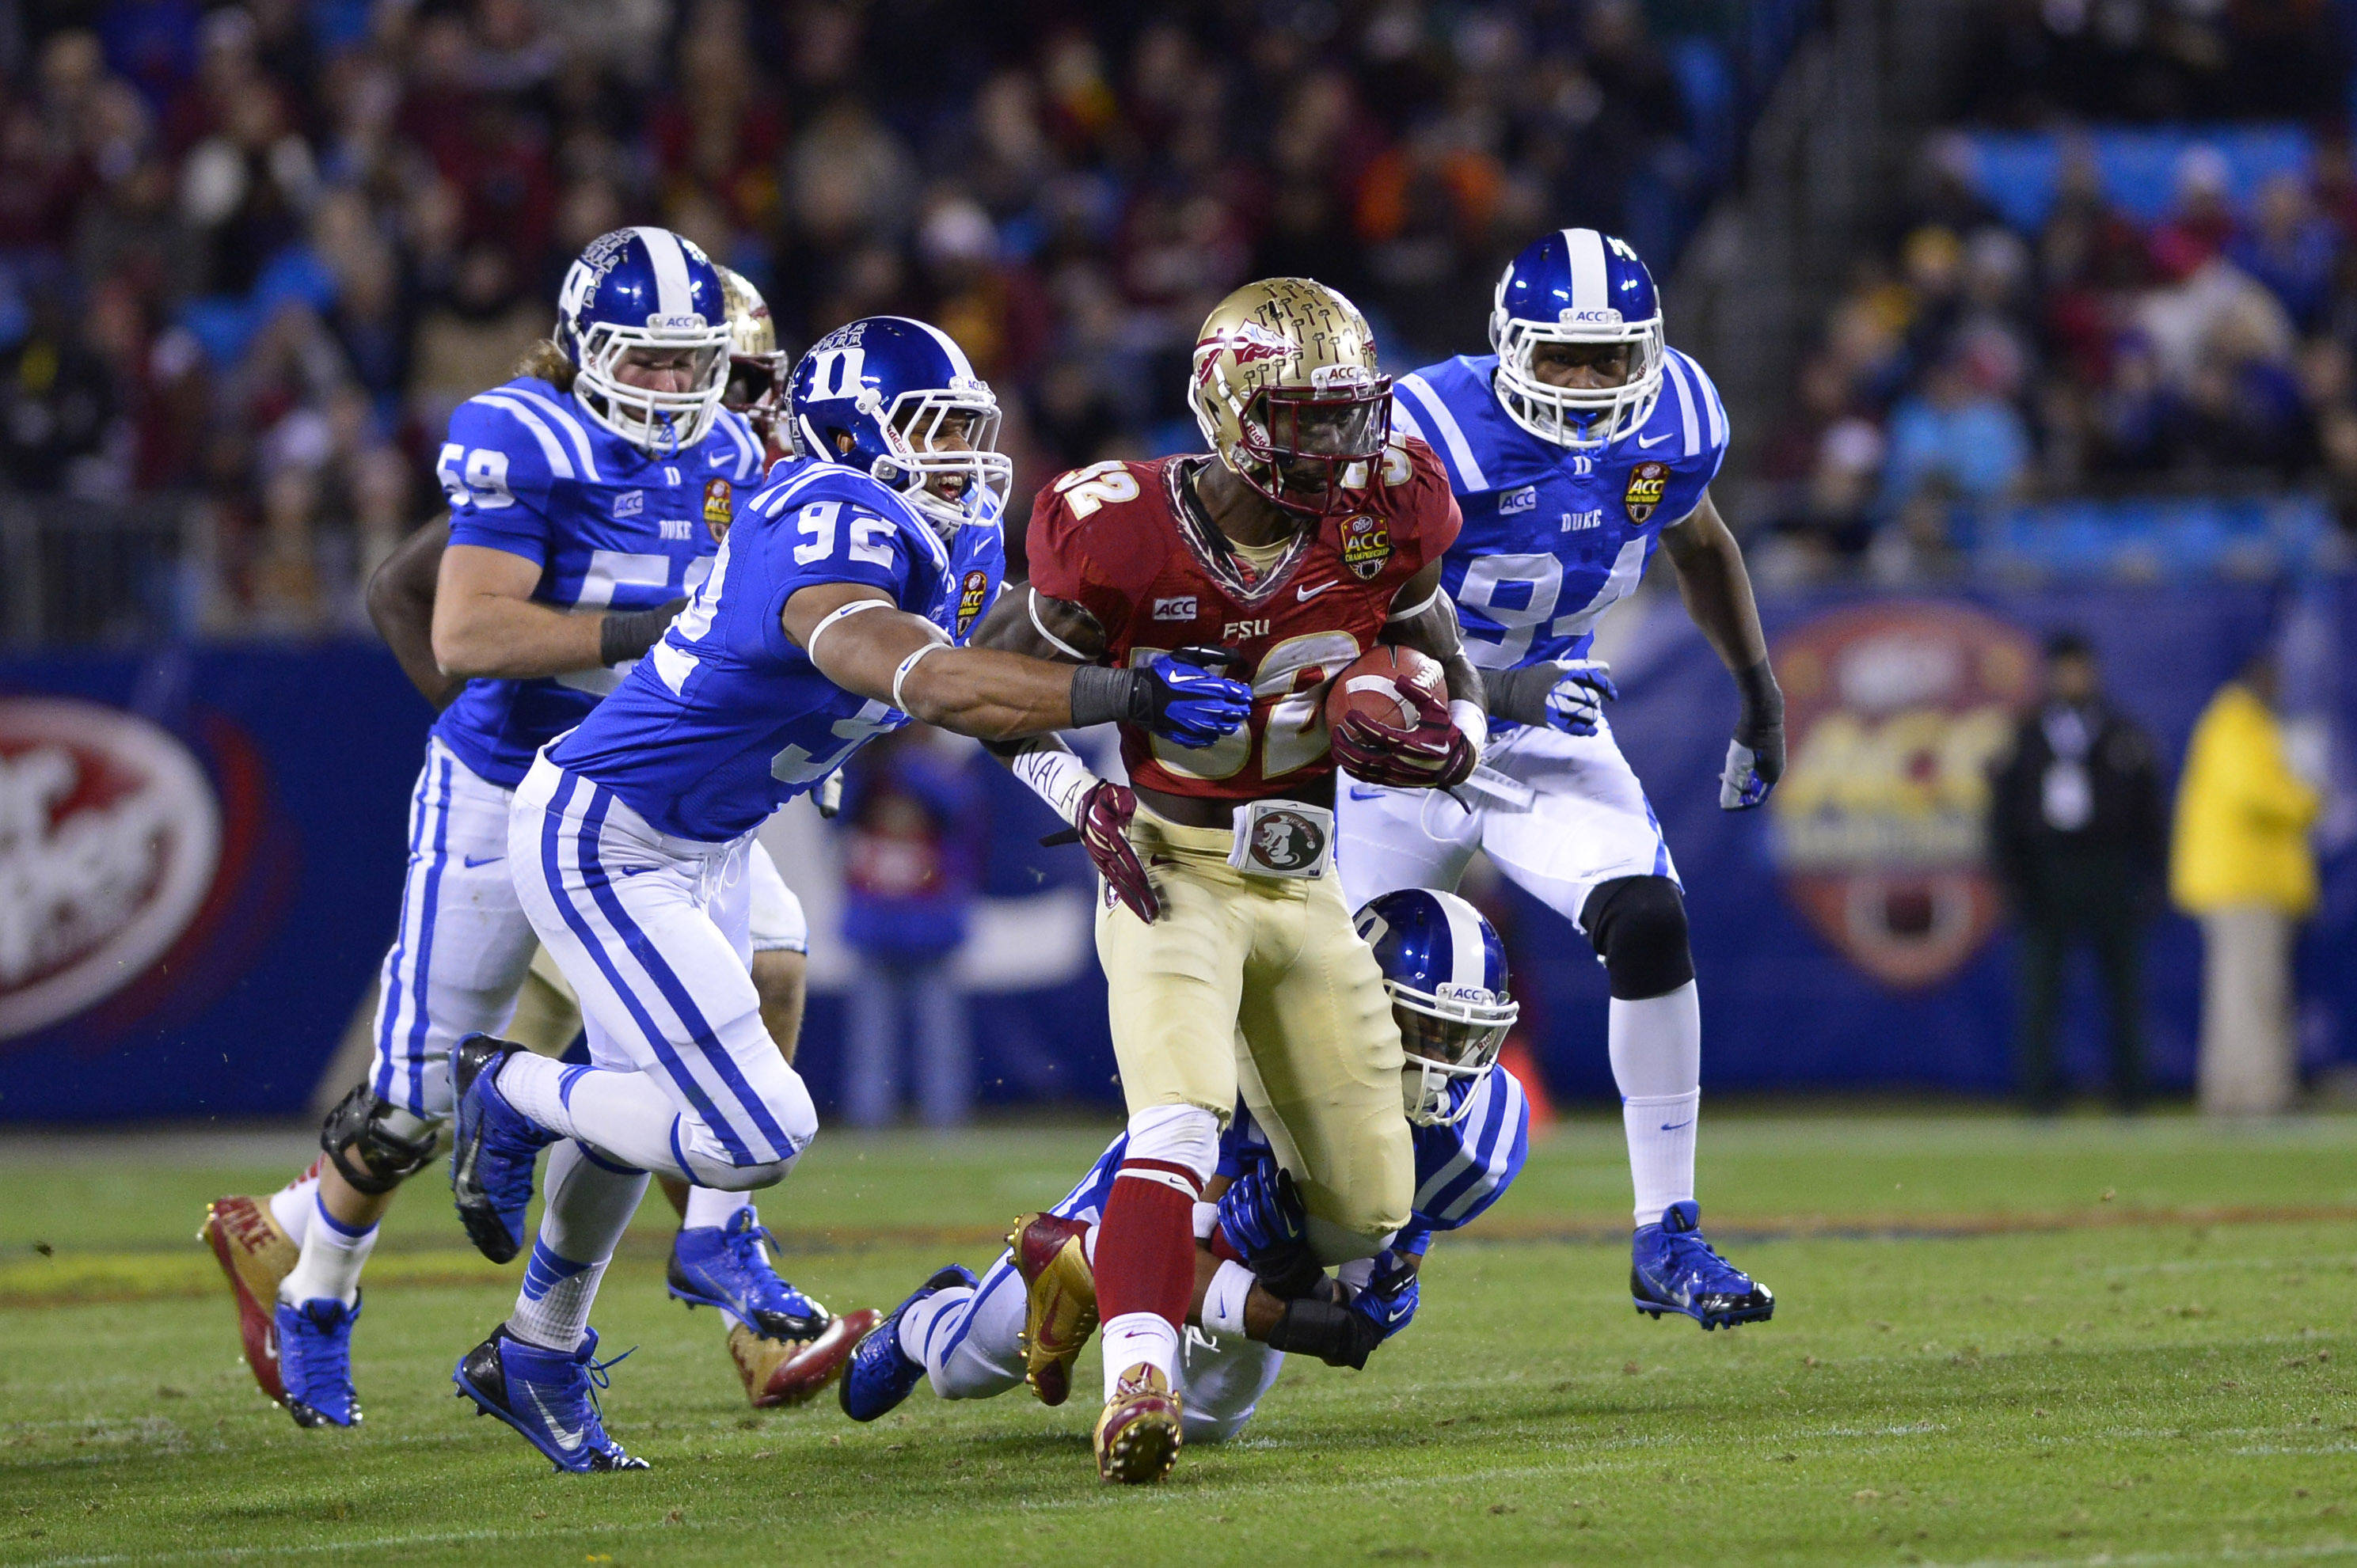 Dec 7, 2013; Charlotte, NC, USA; Florida State Seminoles running back James Wilder Jr. (32) runs as Duke Blue Devils linebacker Kelby Brown (59) and defensive end Justin Foxx (92) and cornerback Deondre Singleton (33) and defensive end Jordan DeWalt-Ondijo (94) defend in the first quarter at Bank of America Stadium. Mandatory Credit: Bob Donnan-USA TODAY Sports